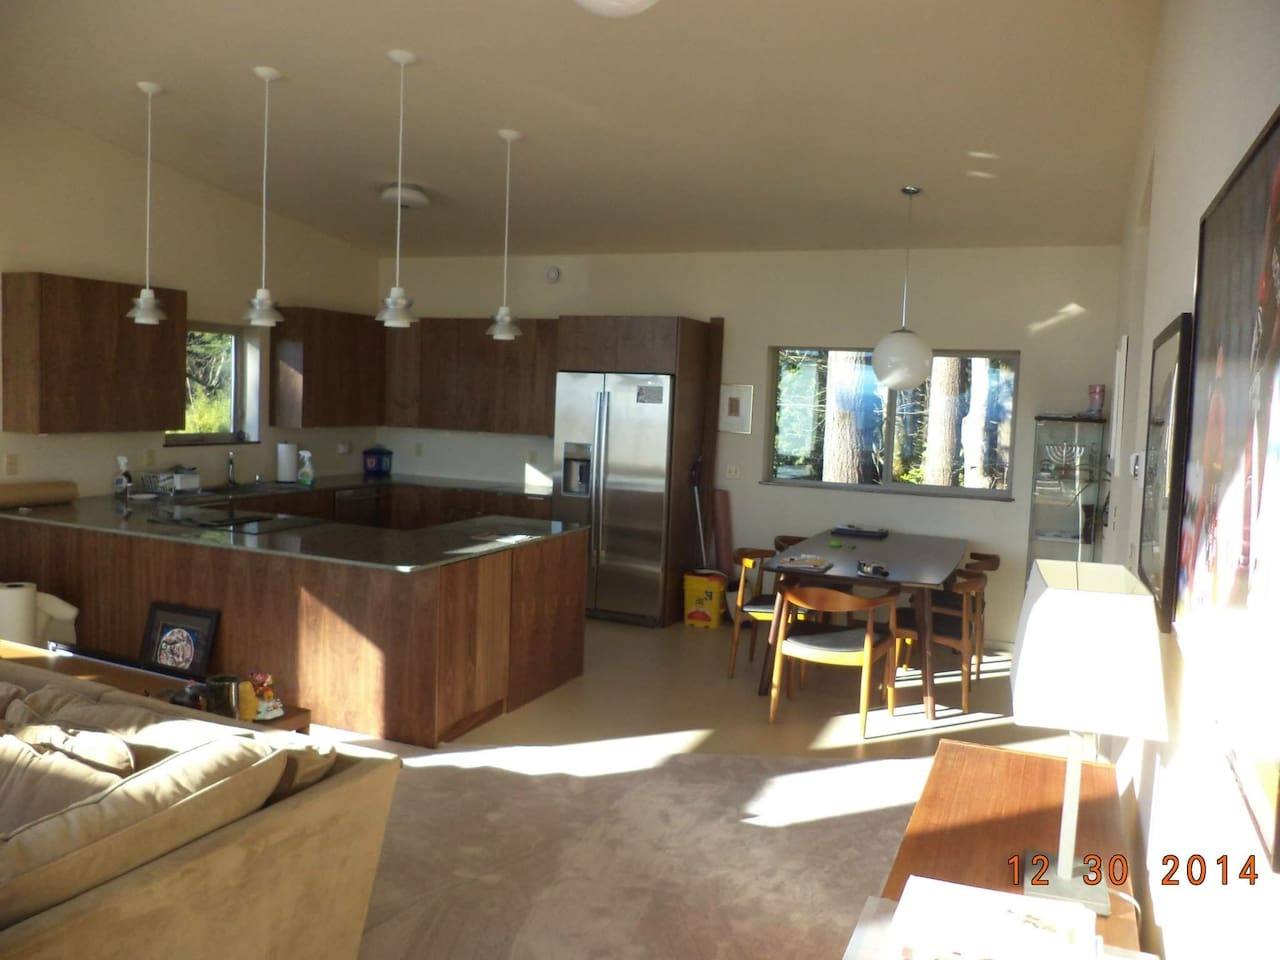 Access to kitchen and living room.